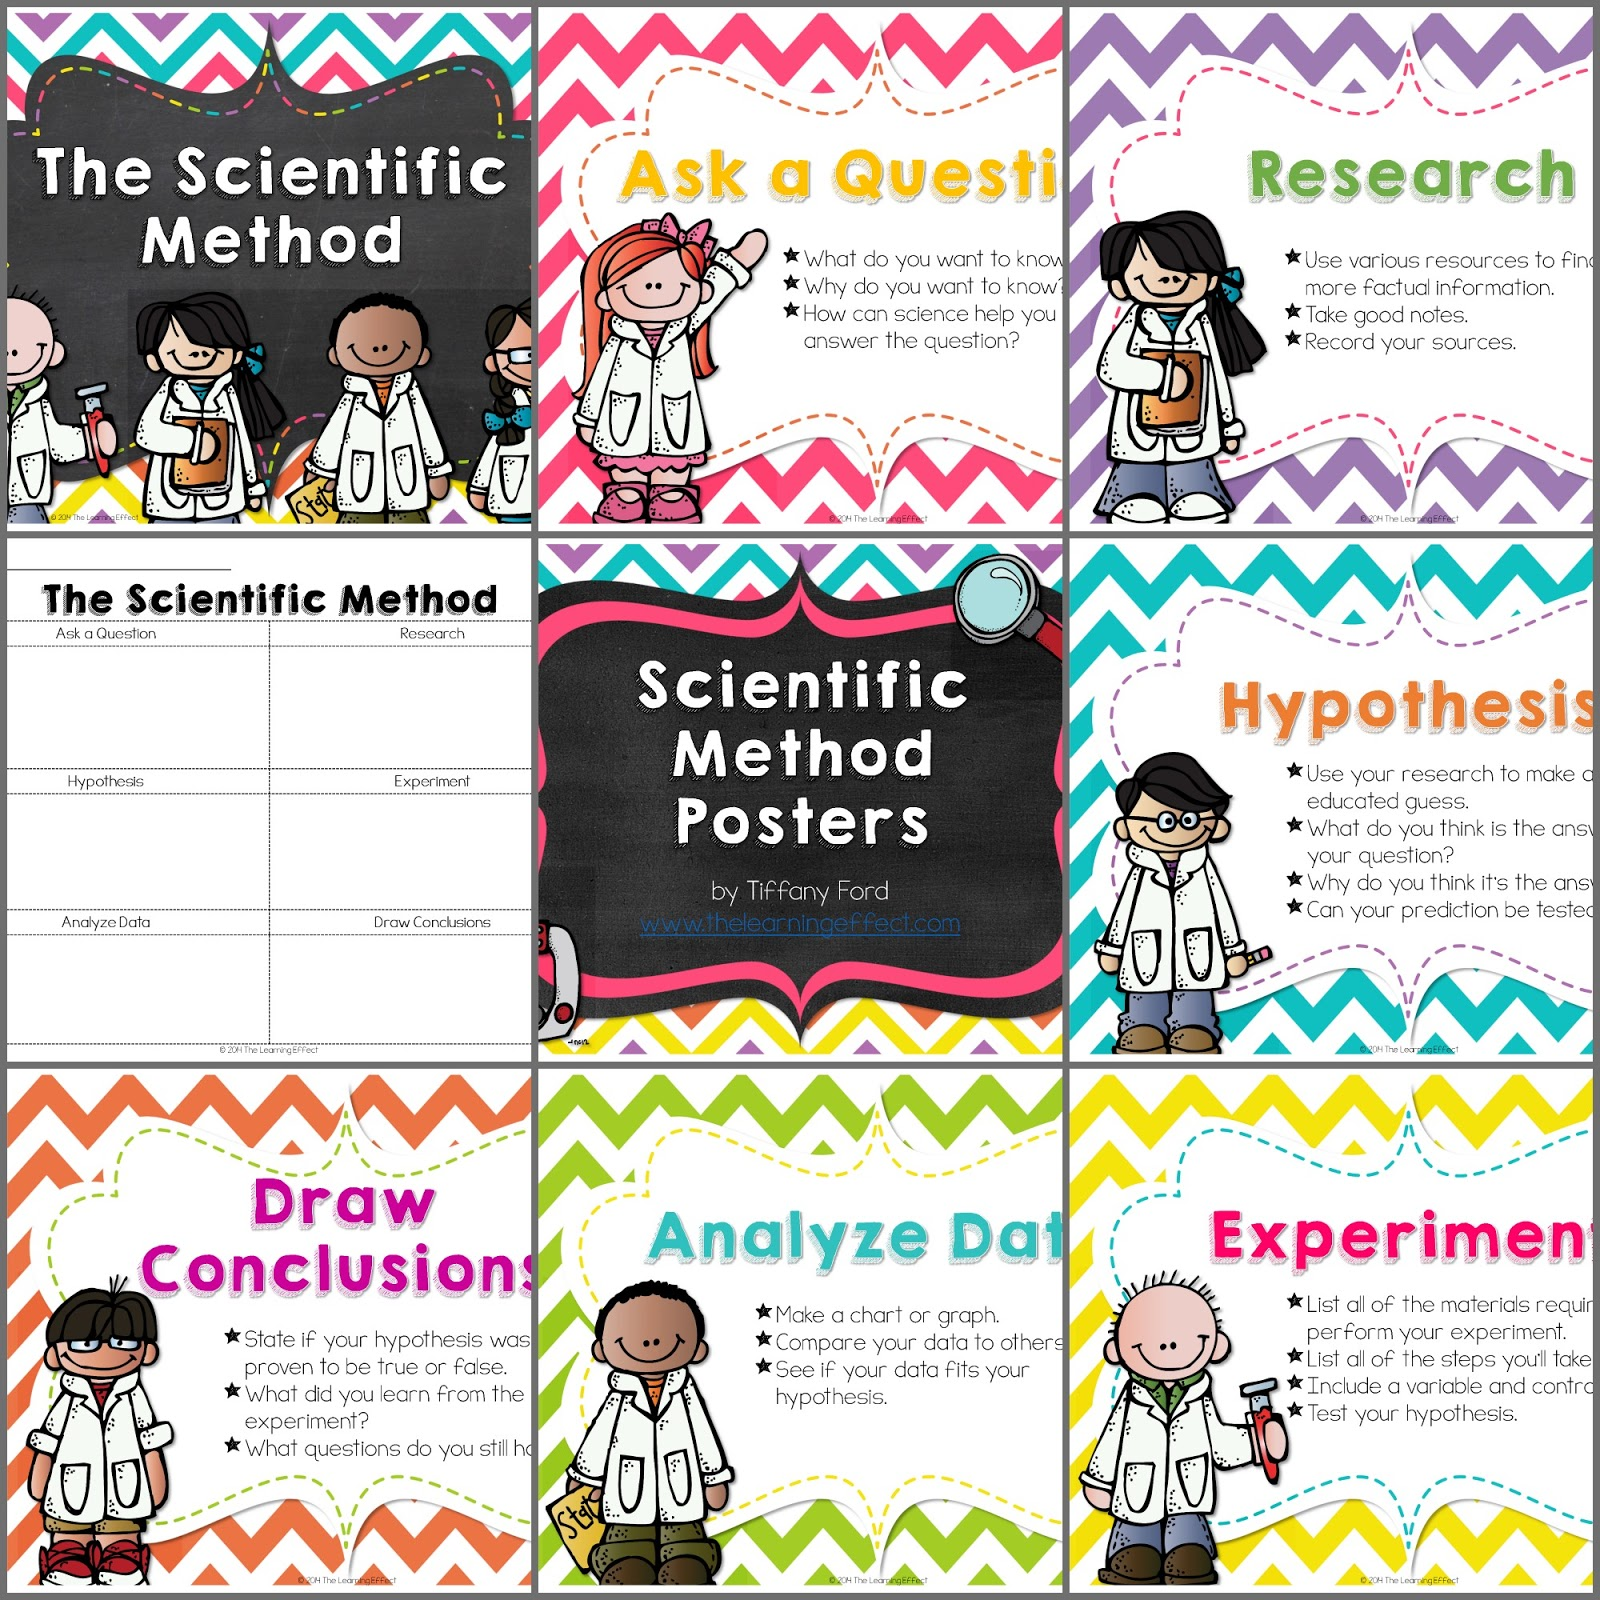 http://www.teacherspayteachers.com/Product/Scientific-Method-Posters-Chevron-1313926